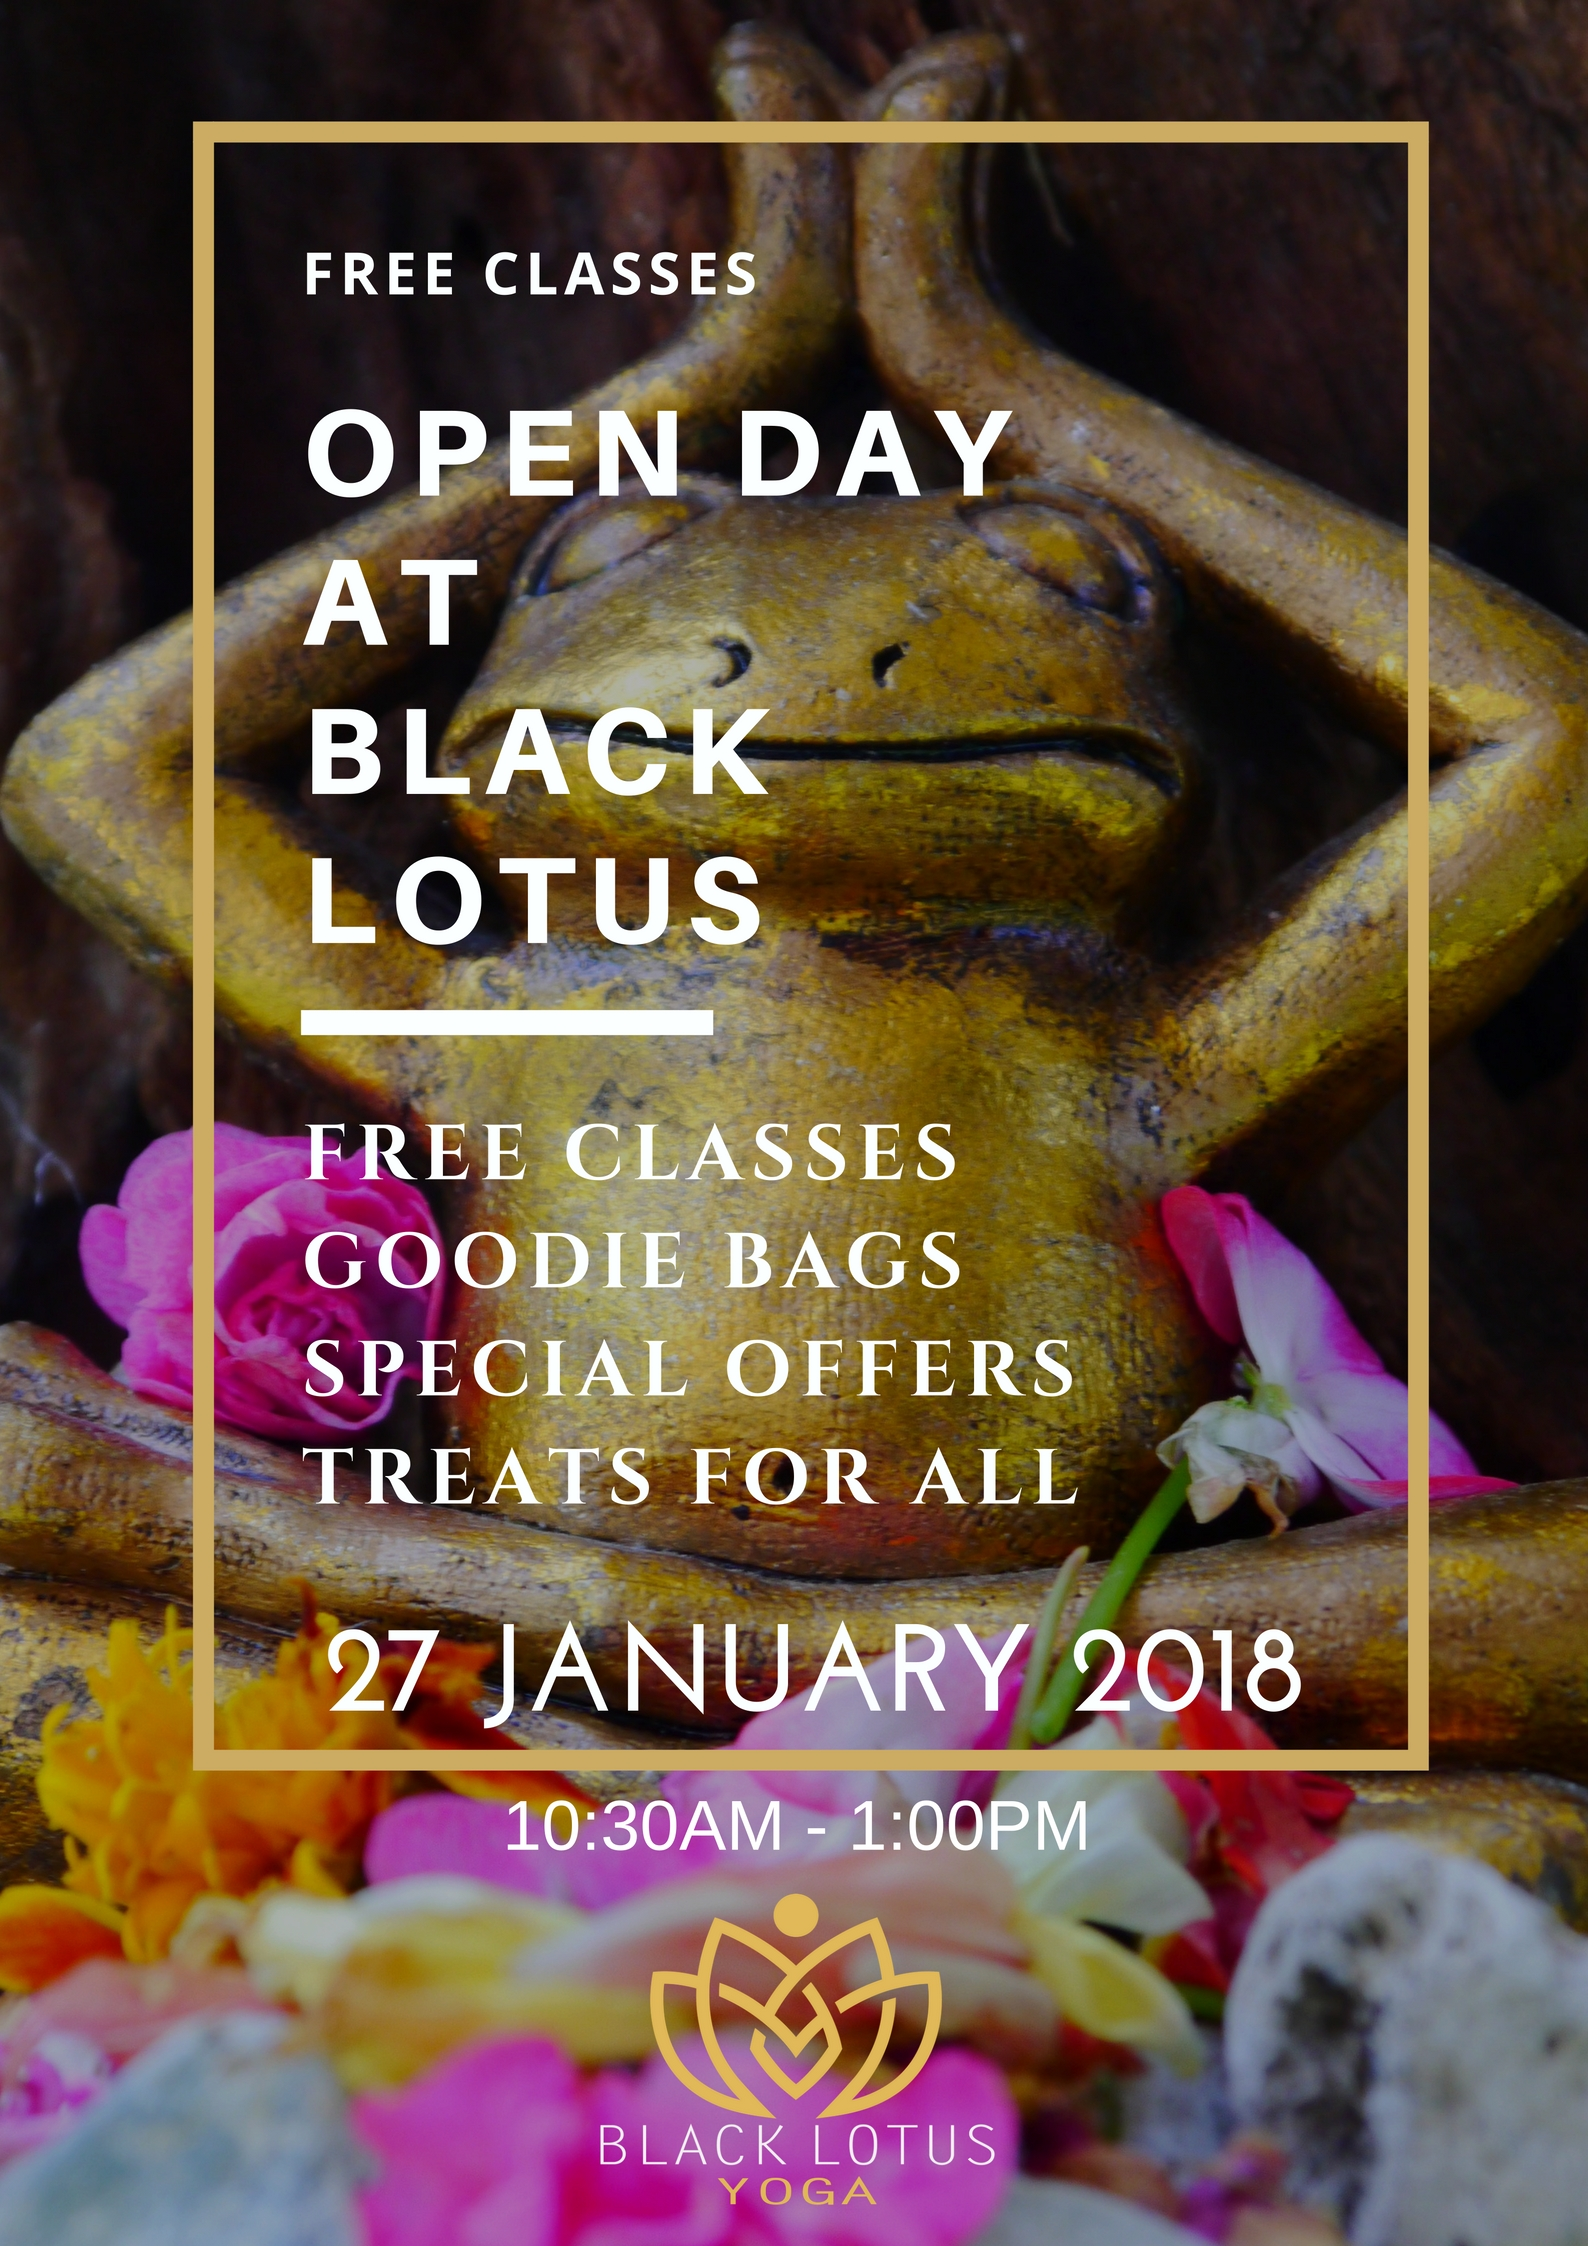 Open Day - FREE Yoga